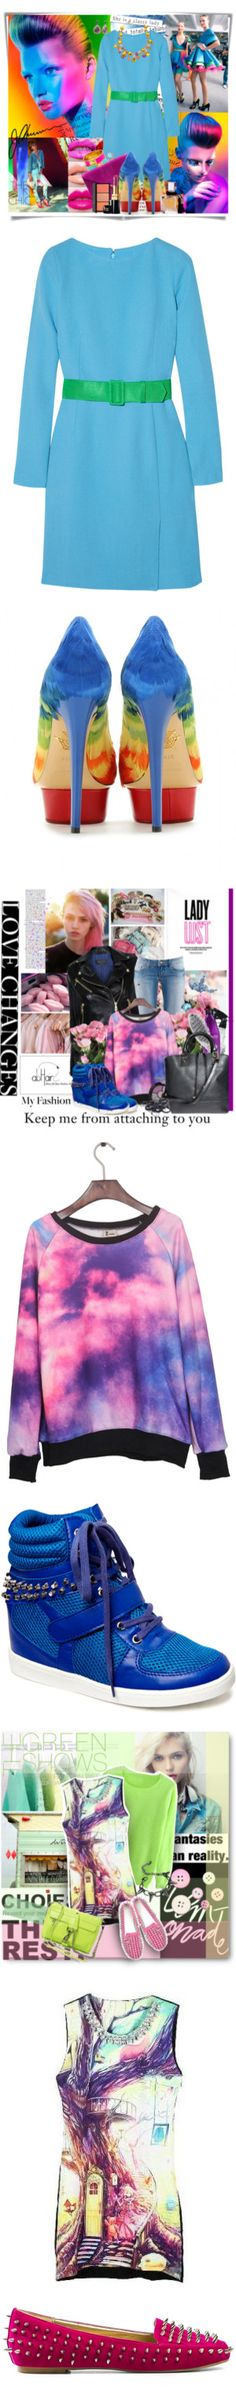 """The Rainbow Connection: 3 Colorful Outfits"" by polyvore-editorial ❤ liked on Polyvore"